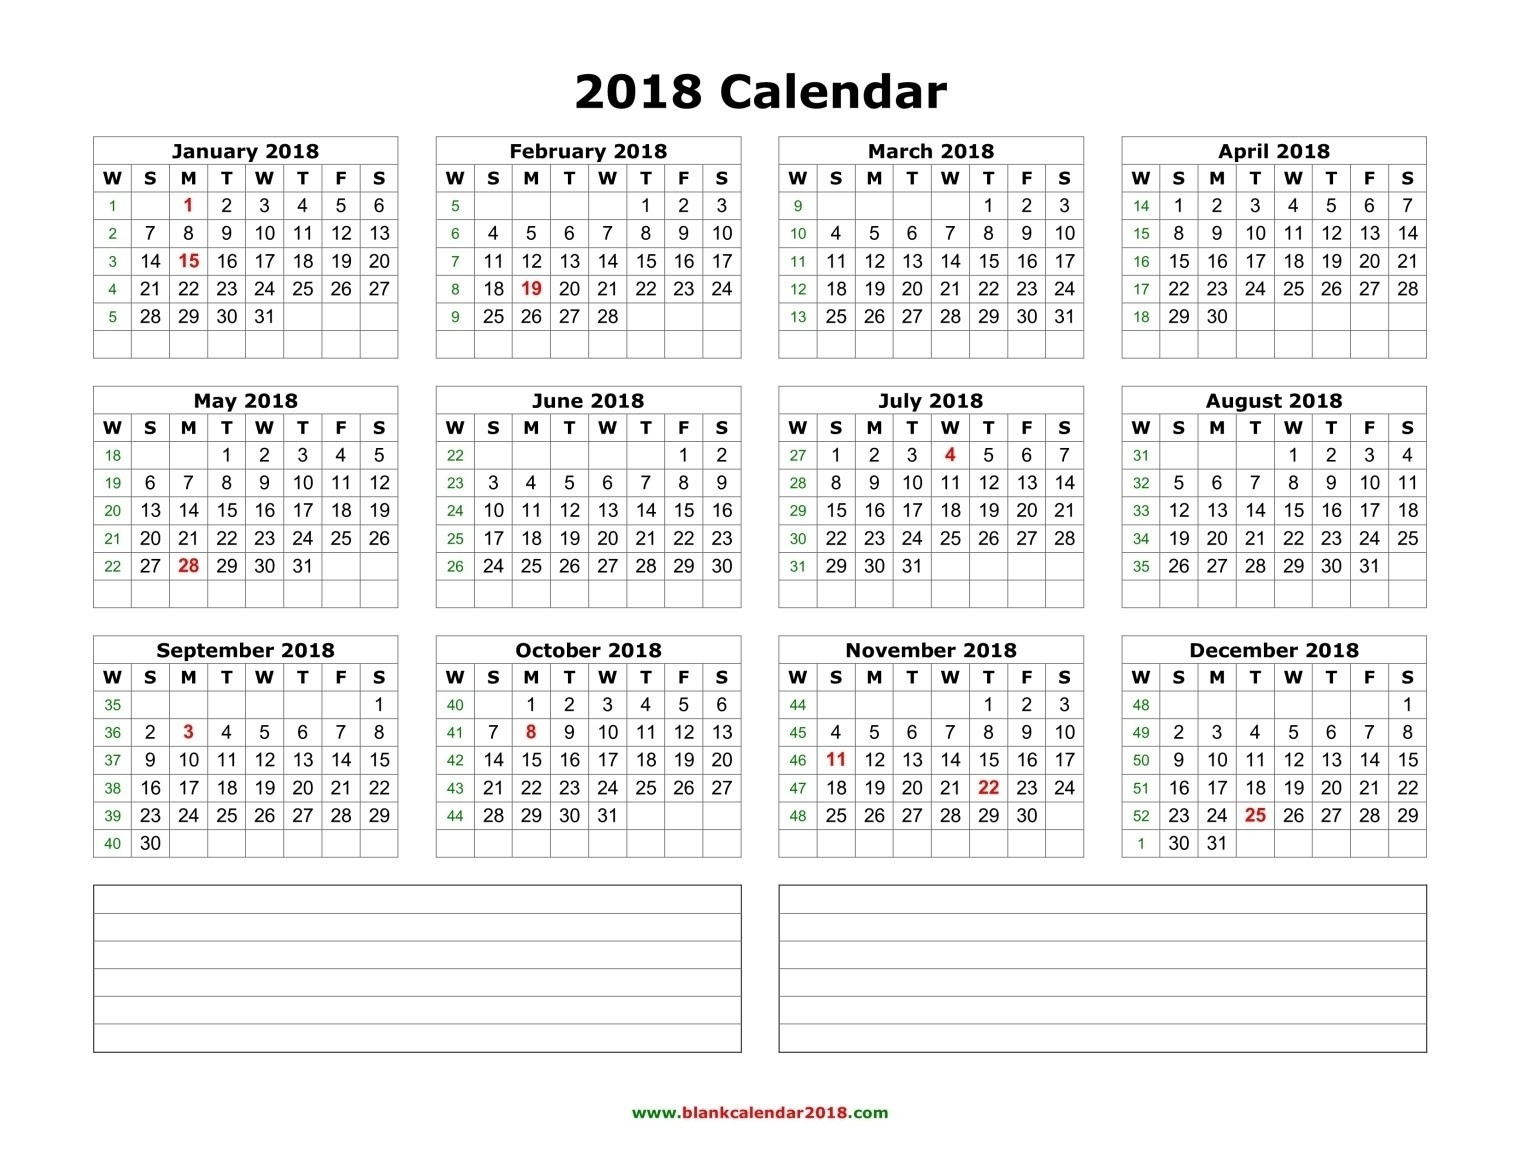 Blank Calendar 2018 Best Calendarlab 13 Calendarlab-Calendar Labs 2020 Templates